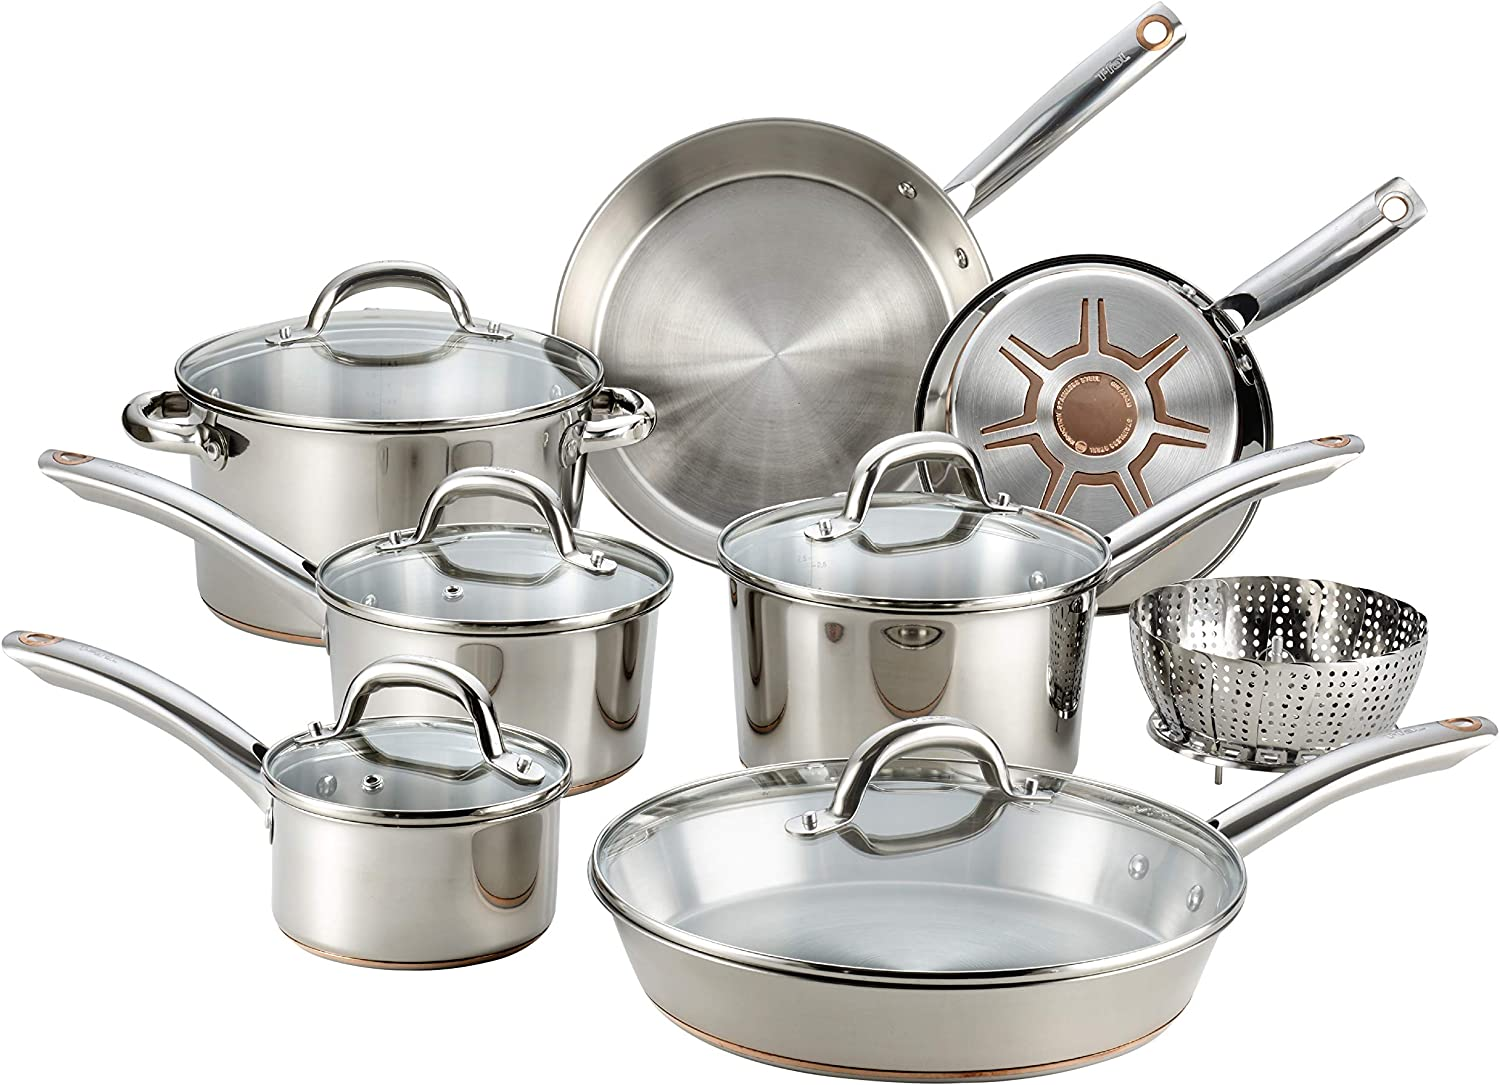 Ultimate Stainless Steel Copper Bottom